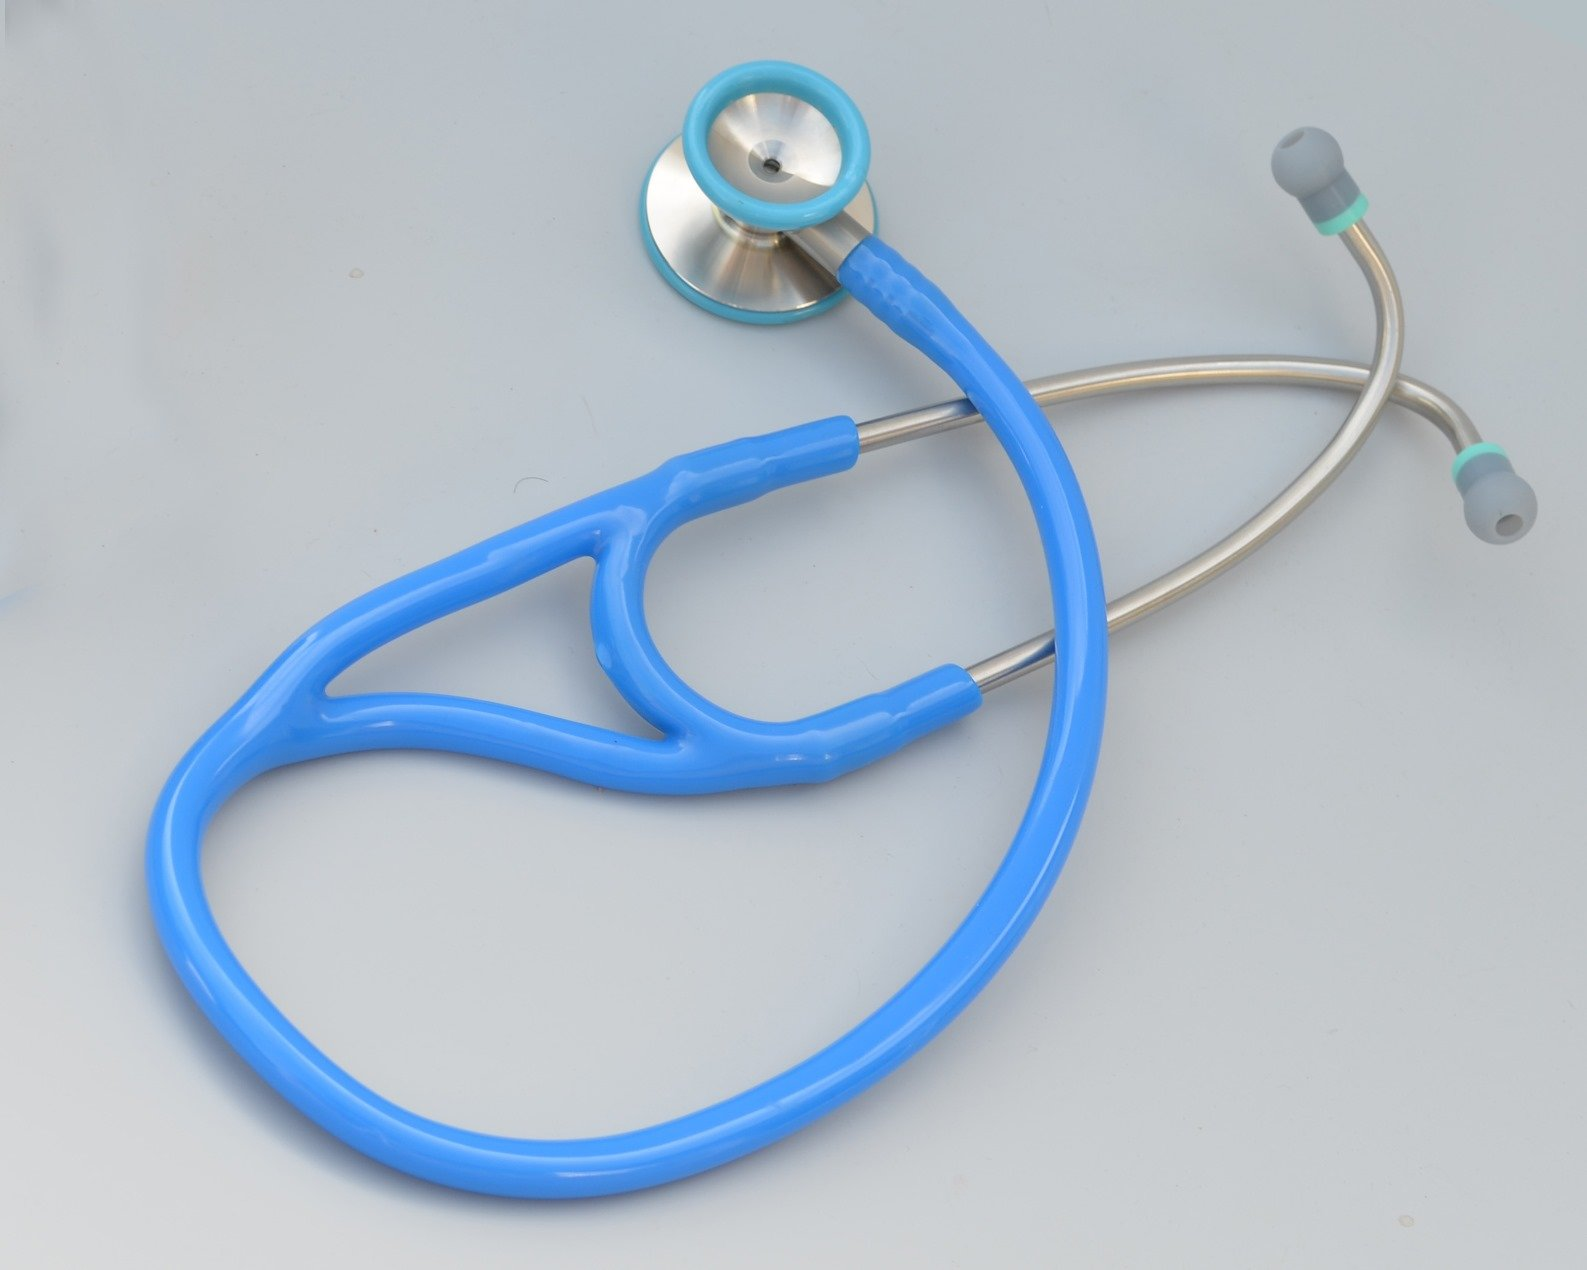 Kila Scopes KL770 Cardiac Dual Head Steel Stethoscope with Bell - SkyBlue